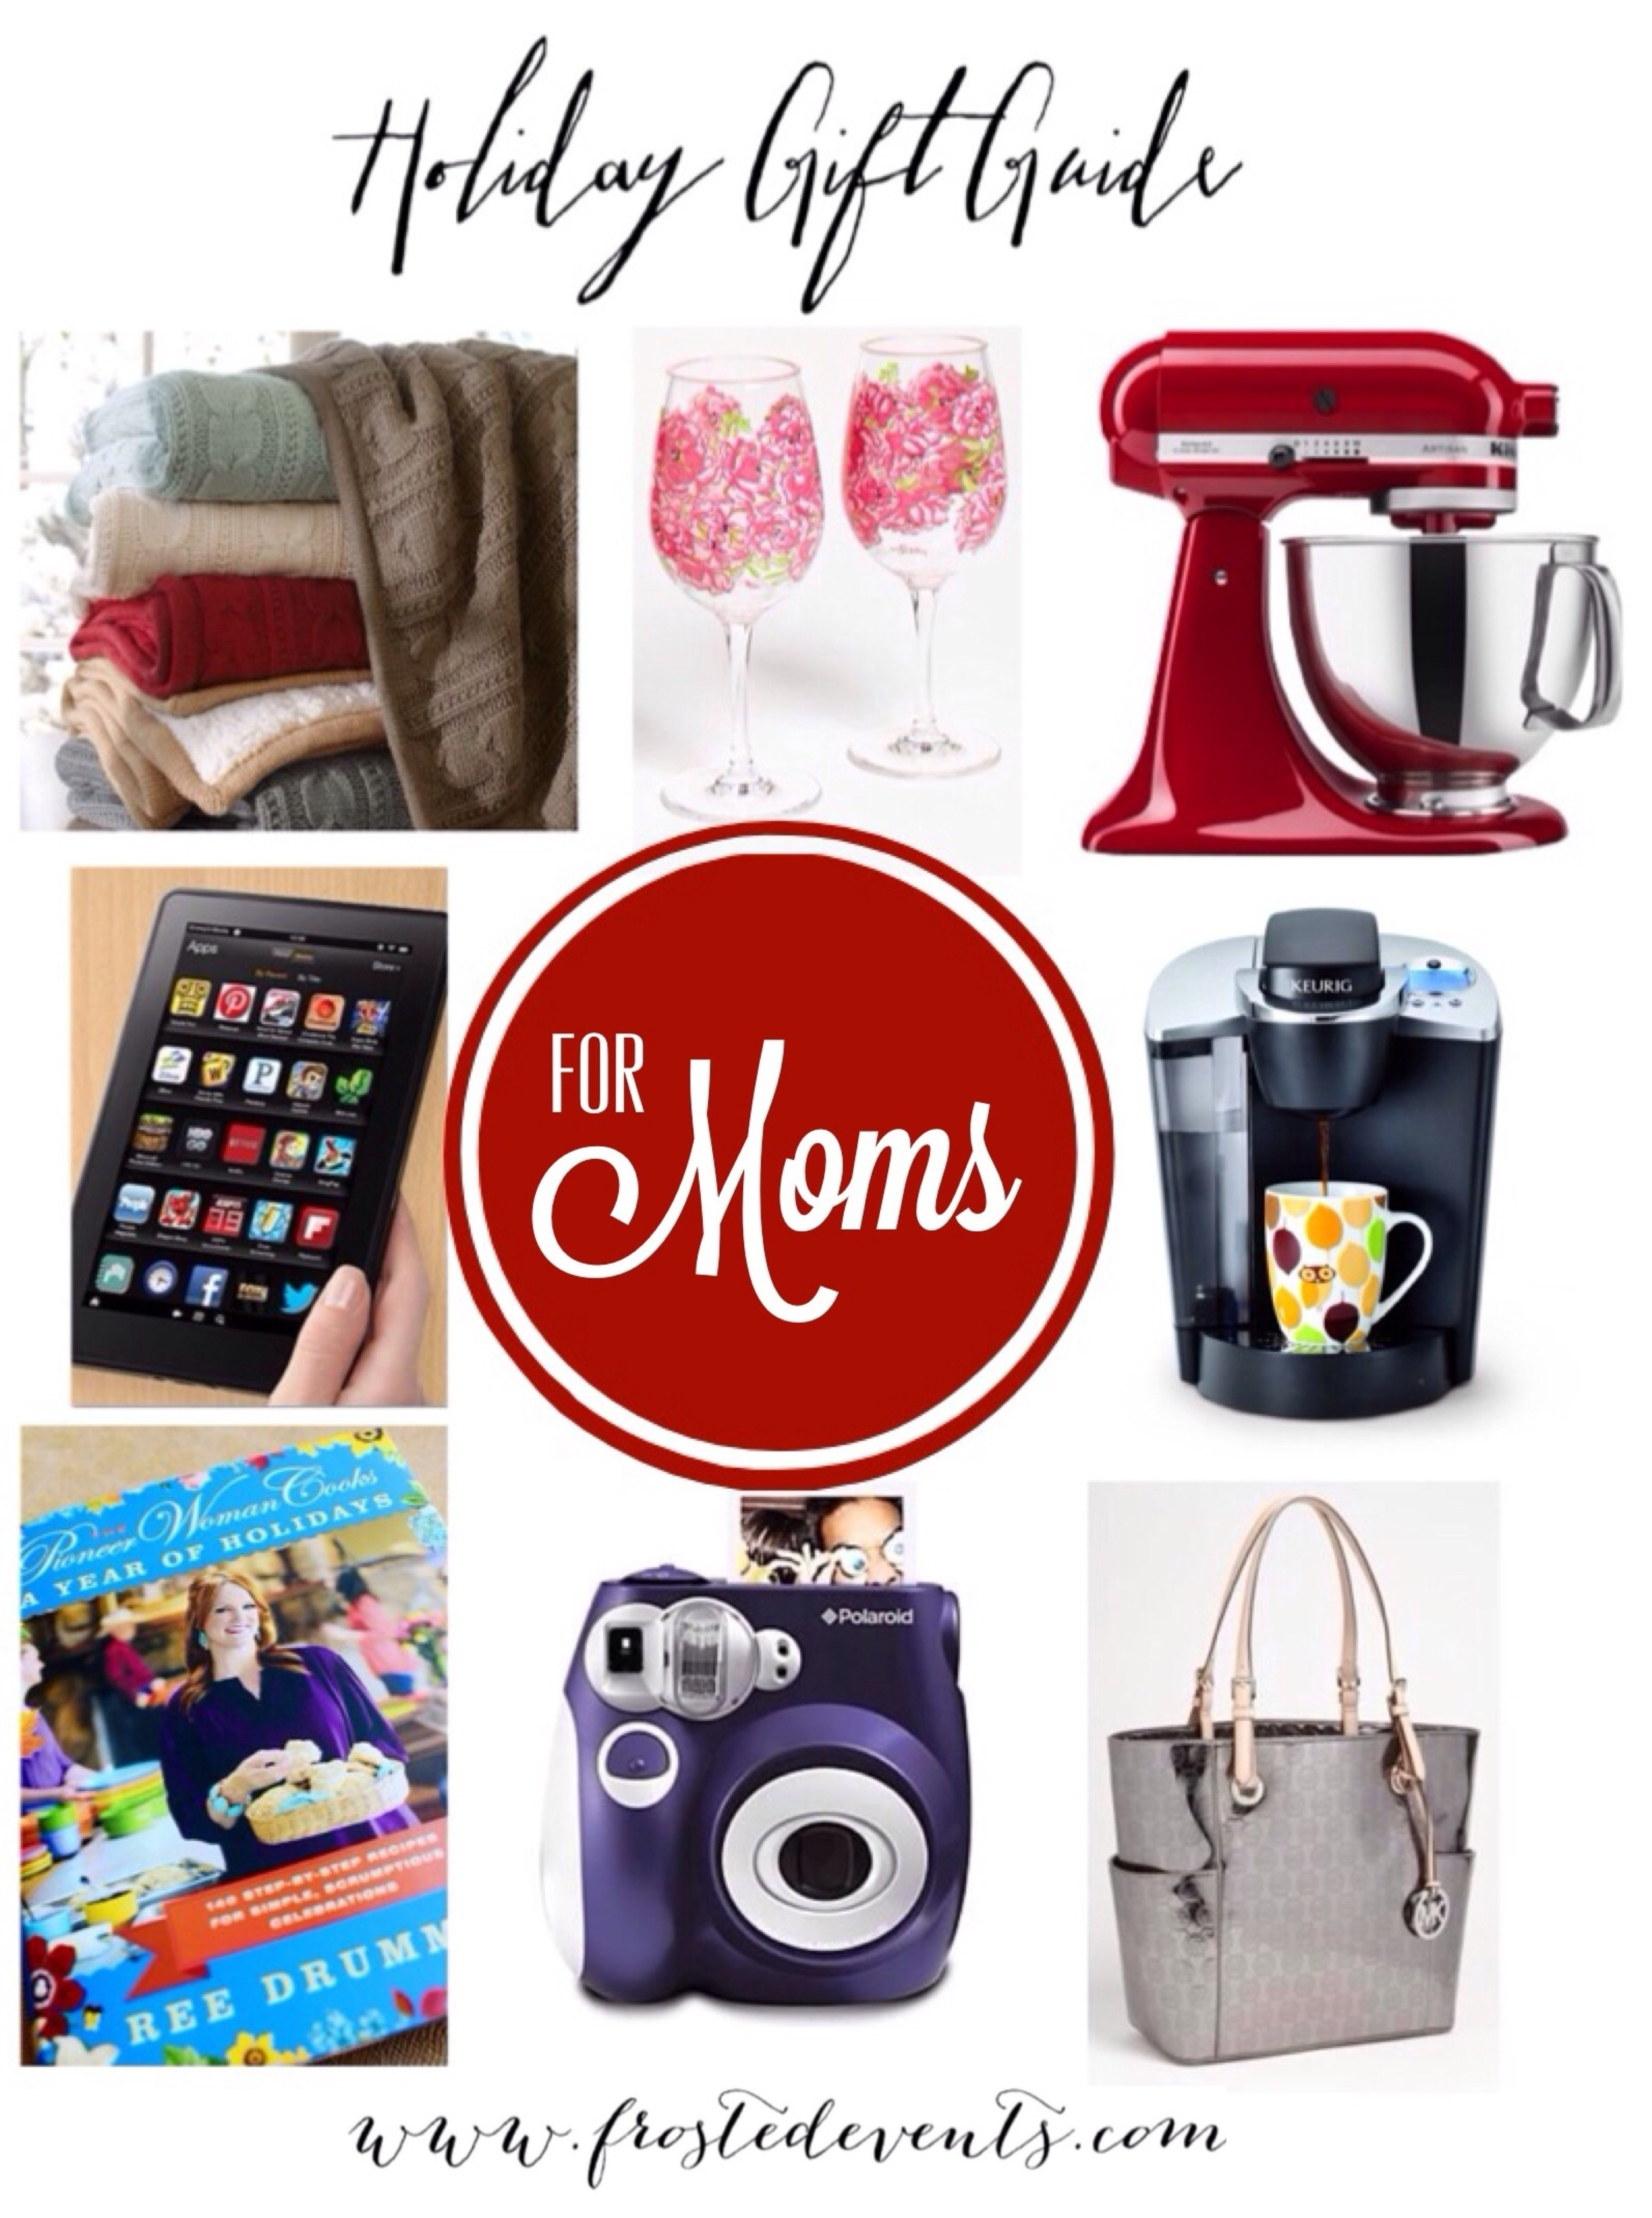 10 Most Recommended Good Gift Ideas For Mom christmas gift ideas for mom webdesigninusa 8 2021